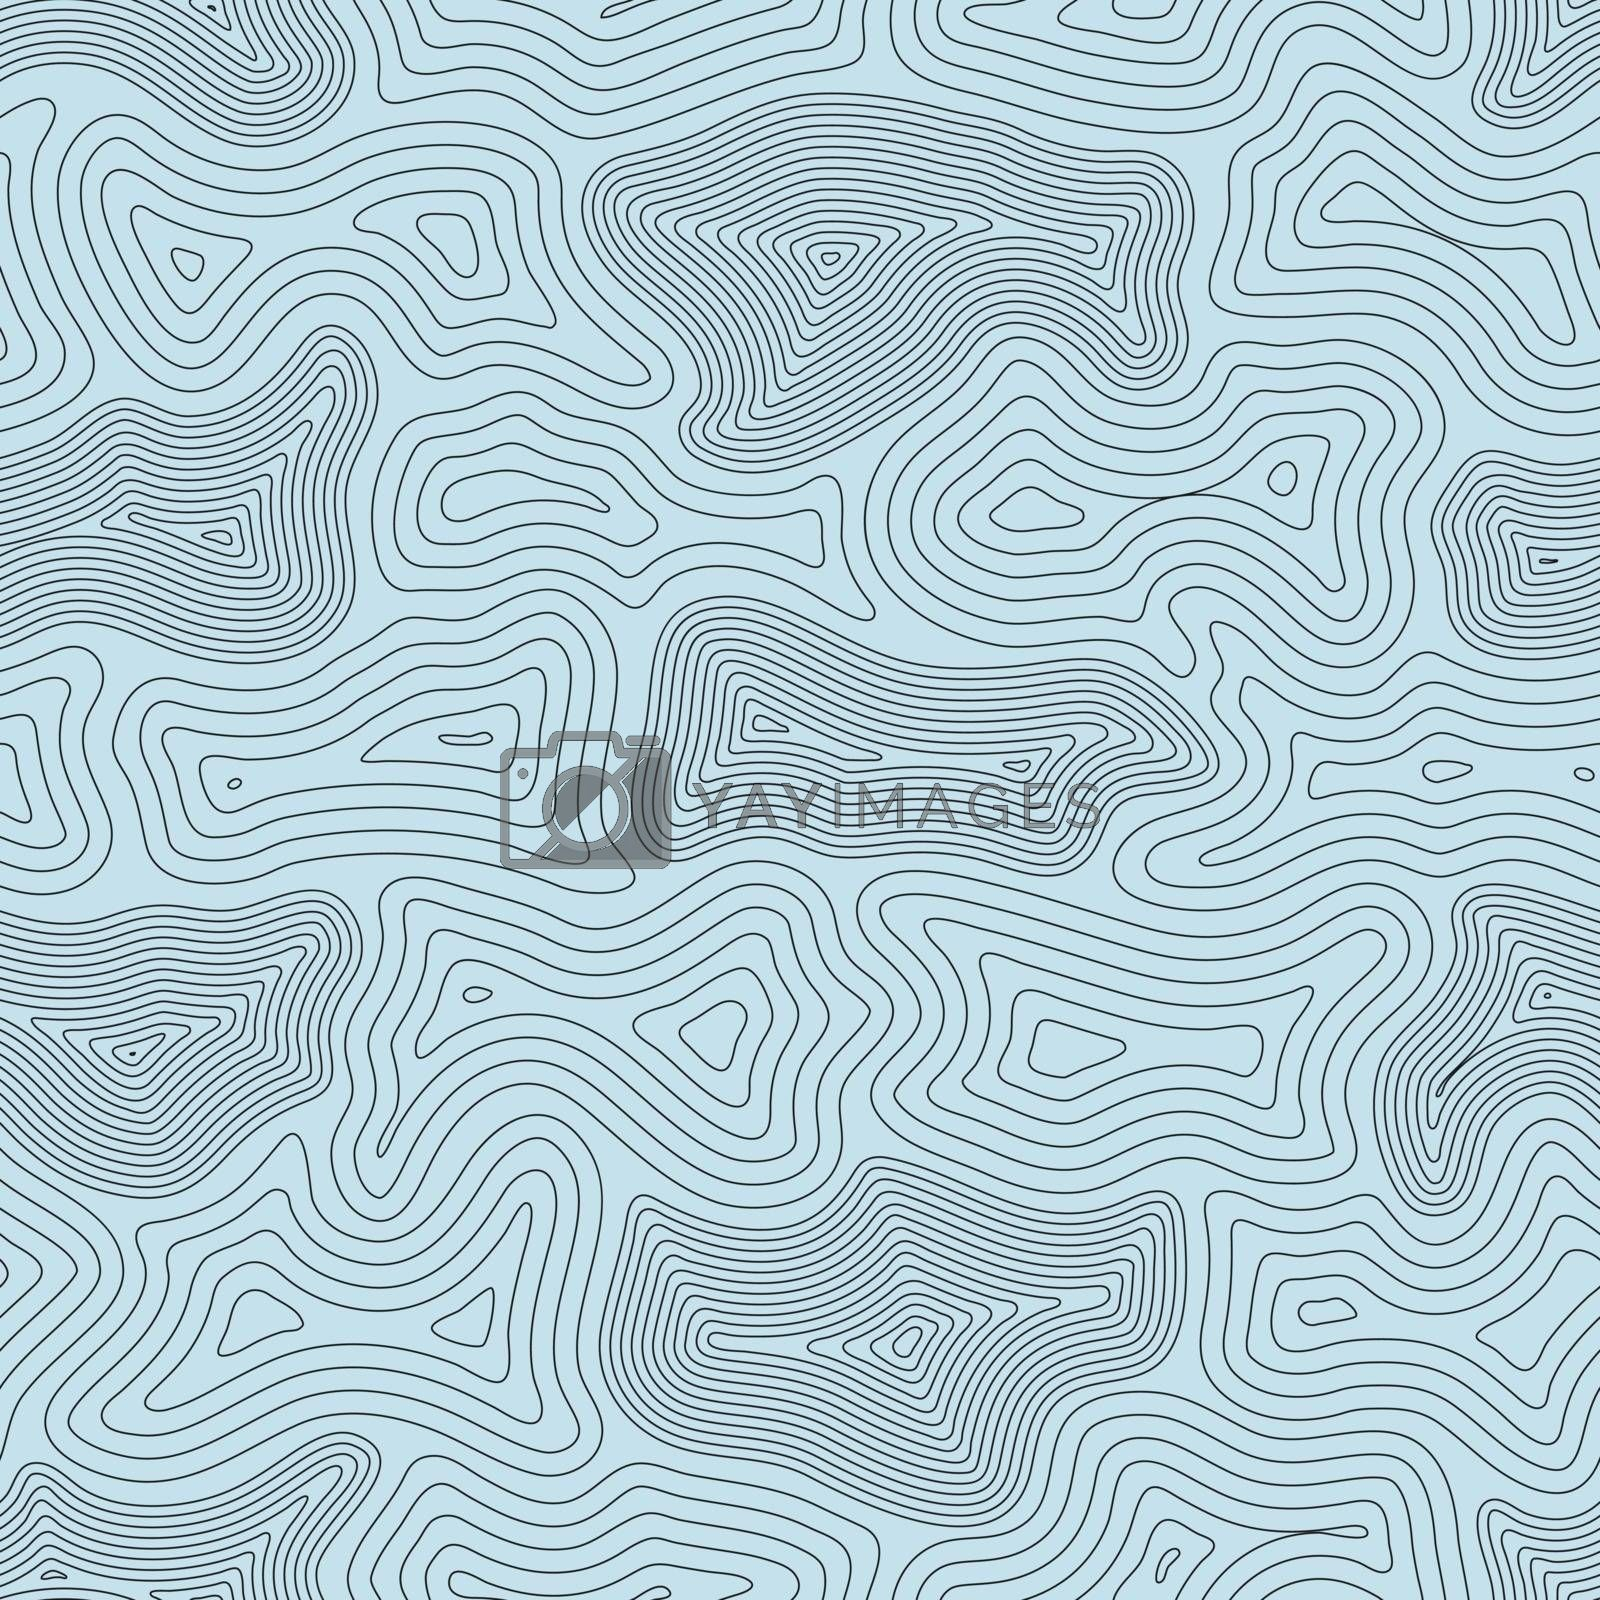 Circumference crumpled align seamless background.